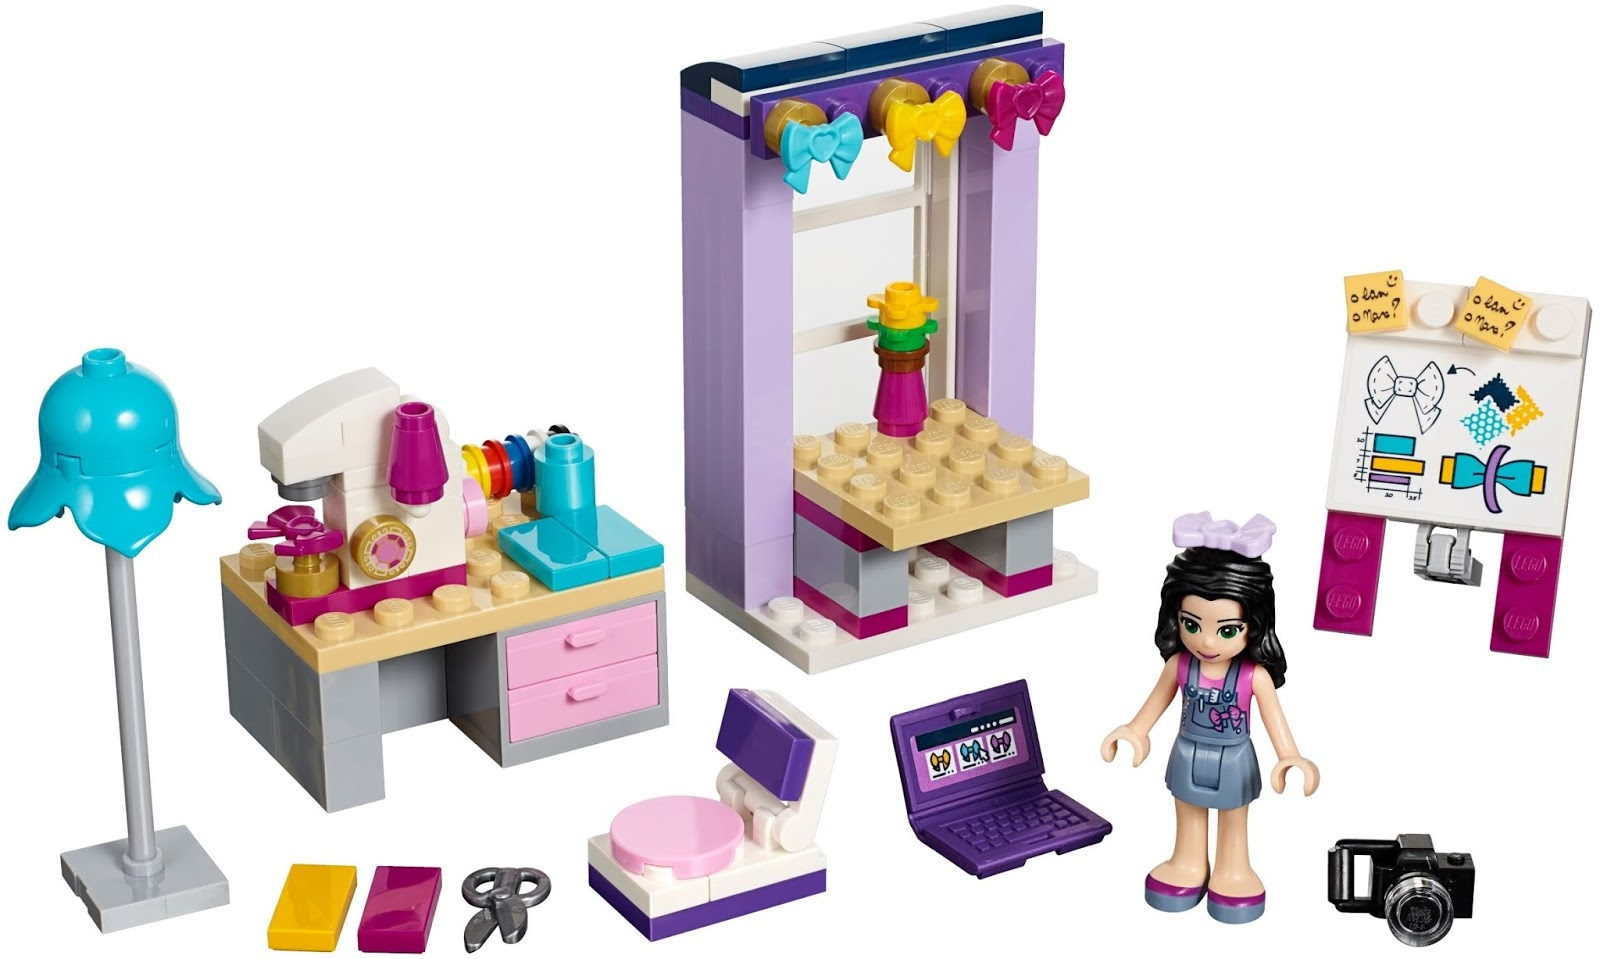 Lego Friends Fashion Design Studio